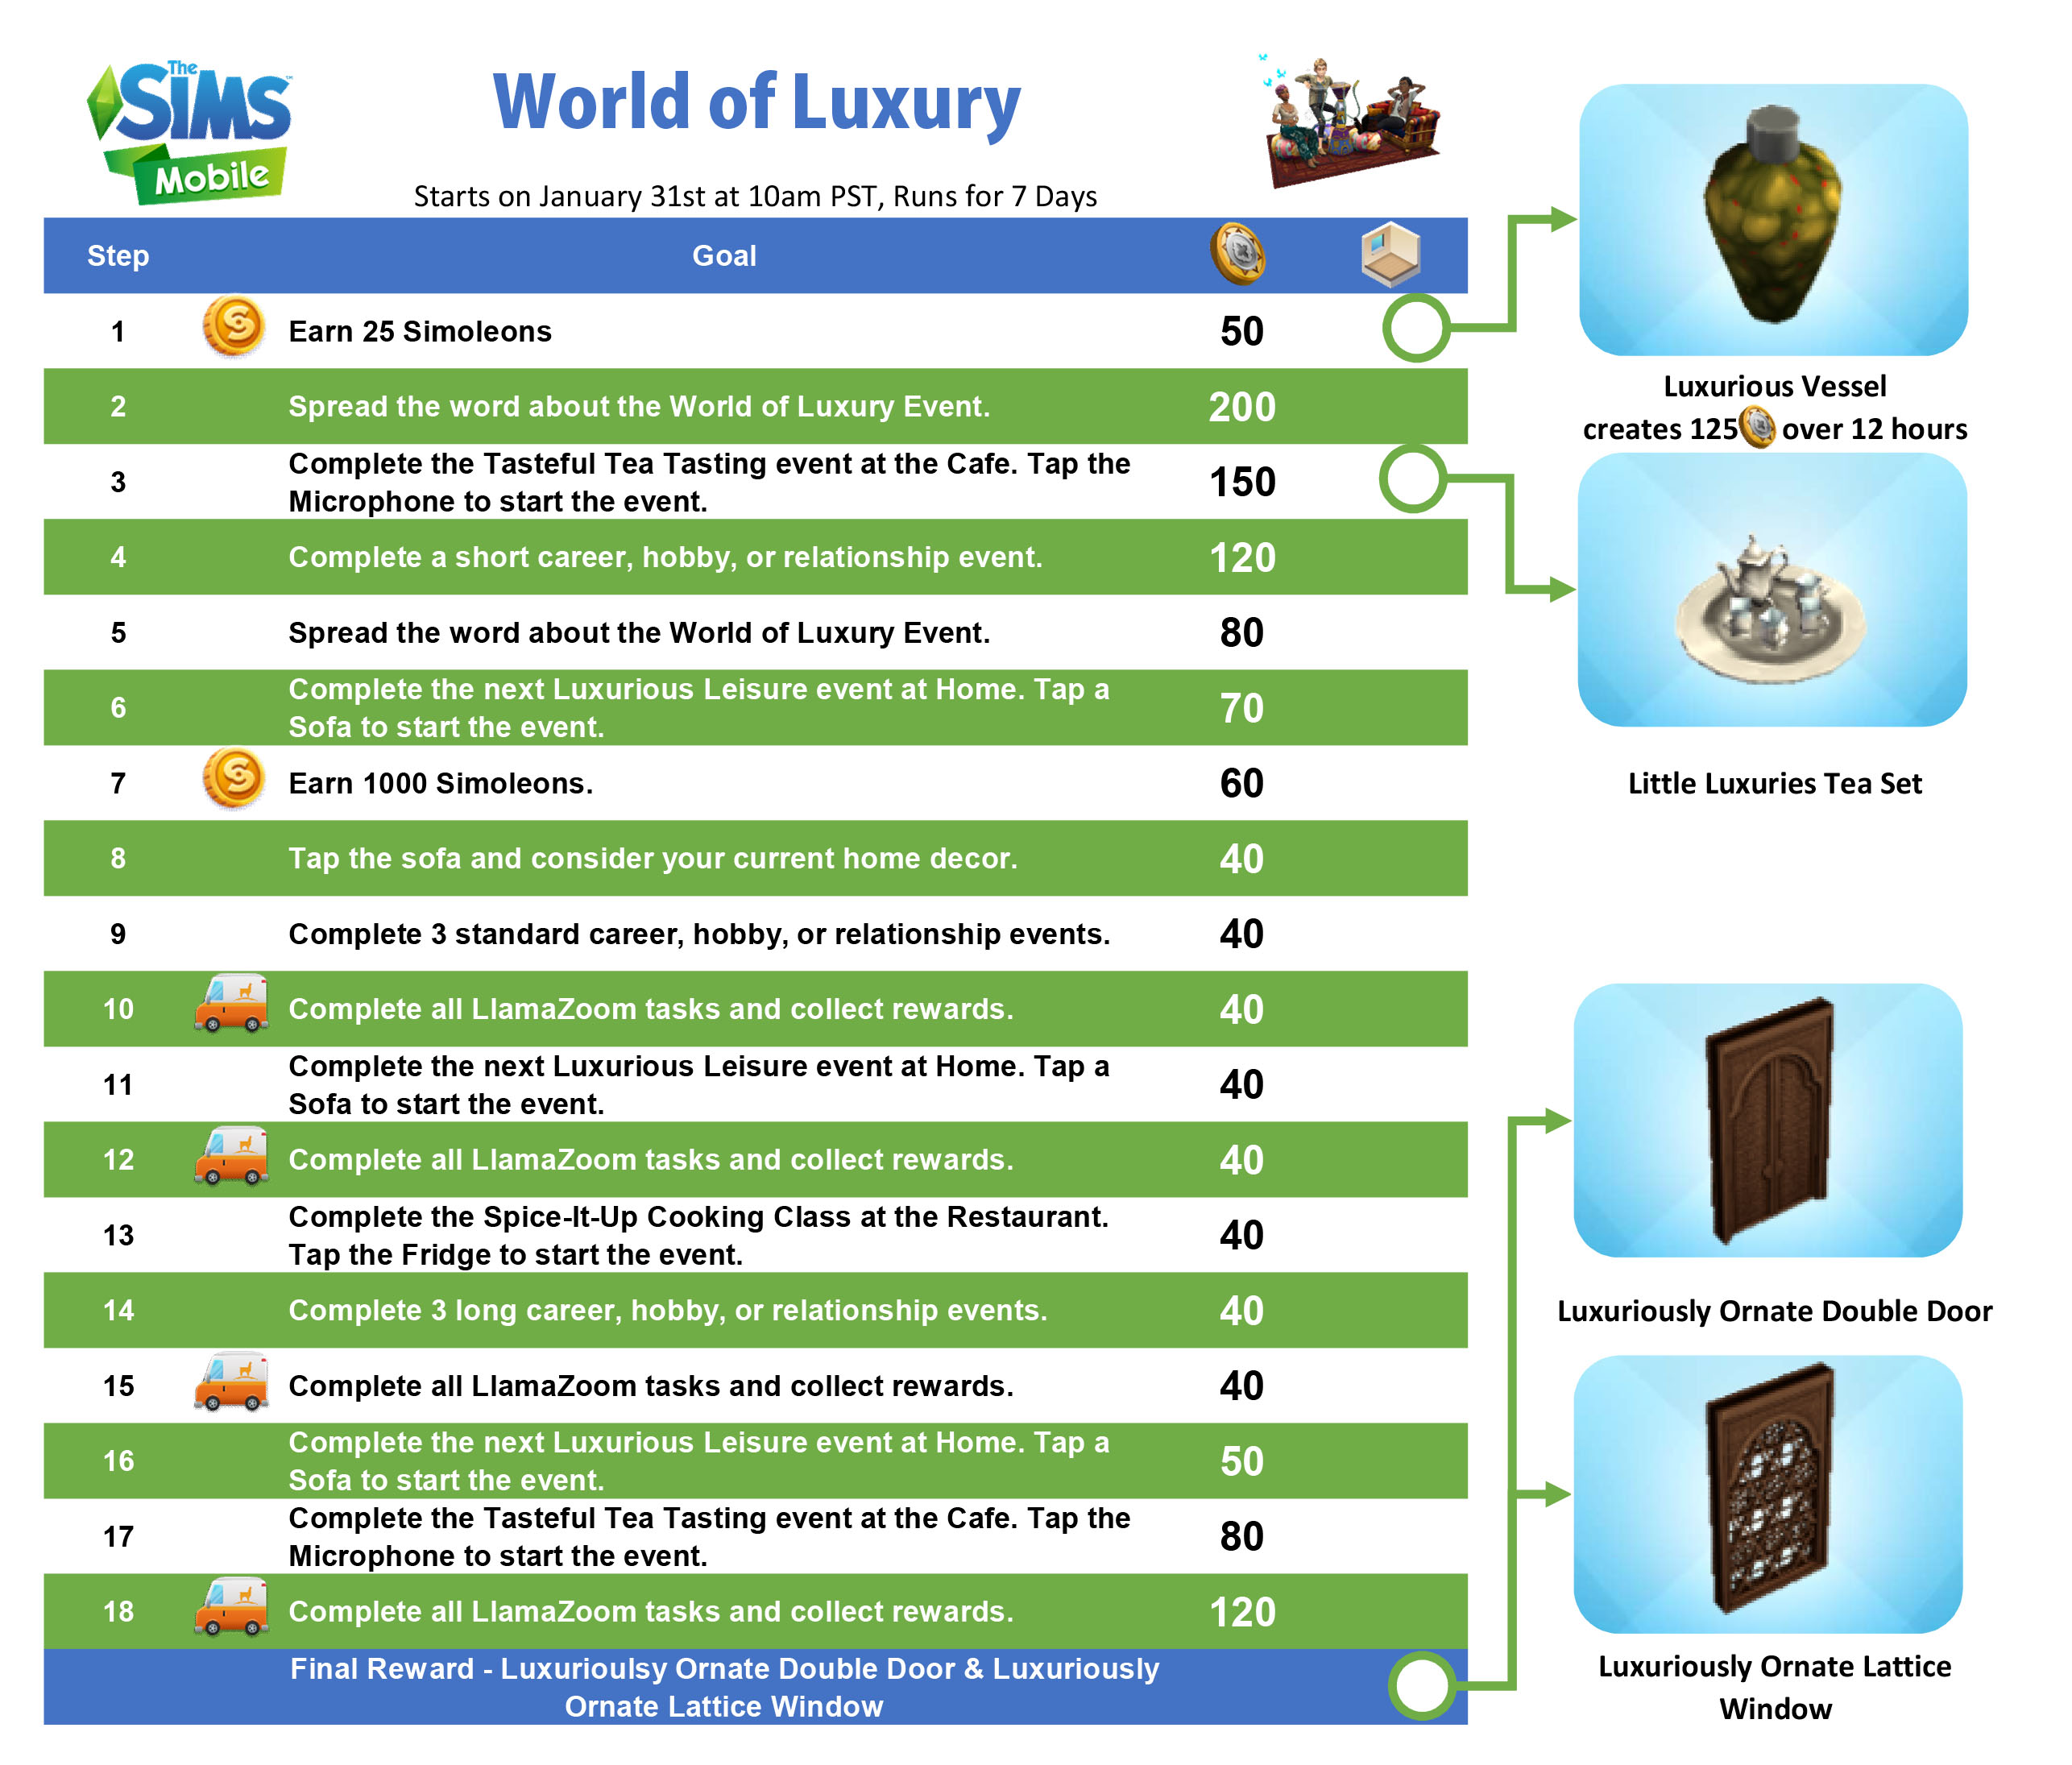 The Sims Mobile World of Luxury event+quest re-run details [Early Access]